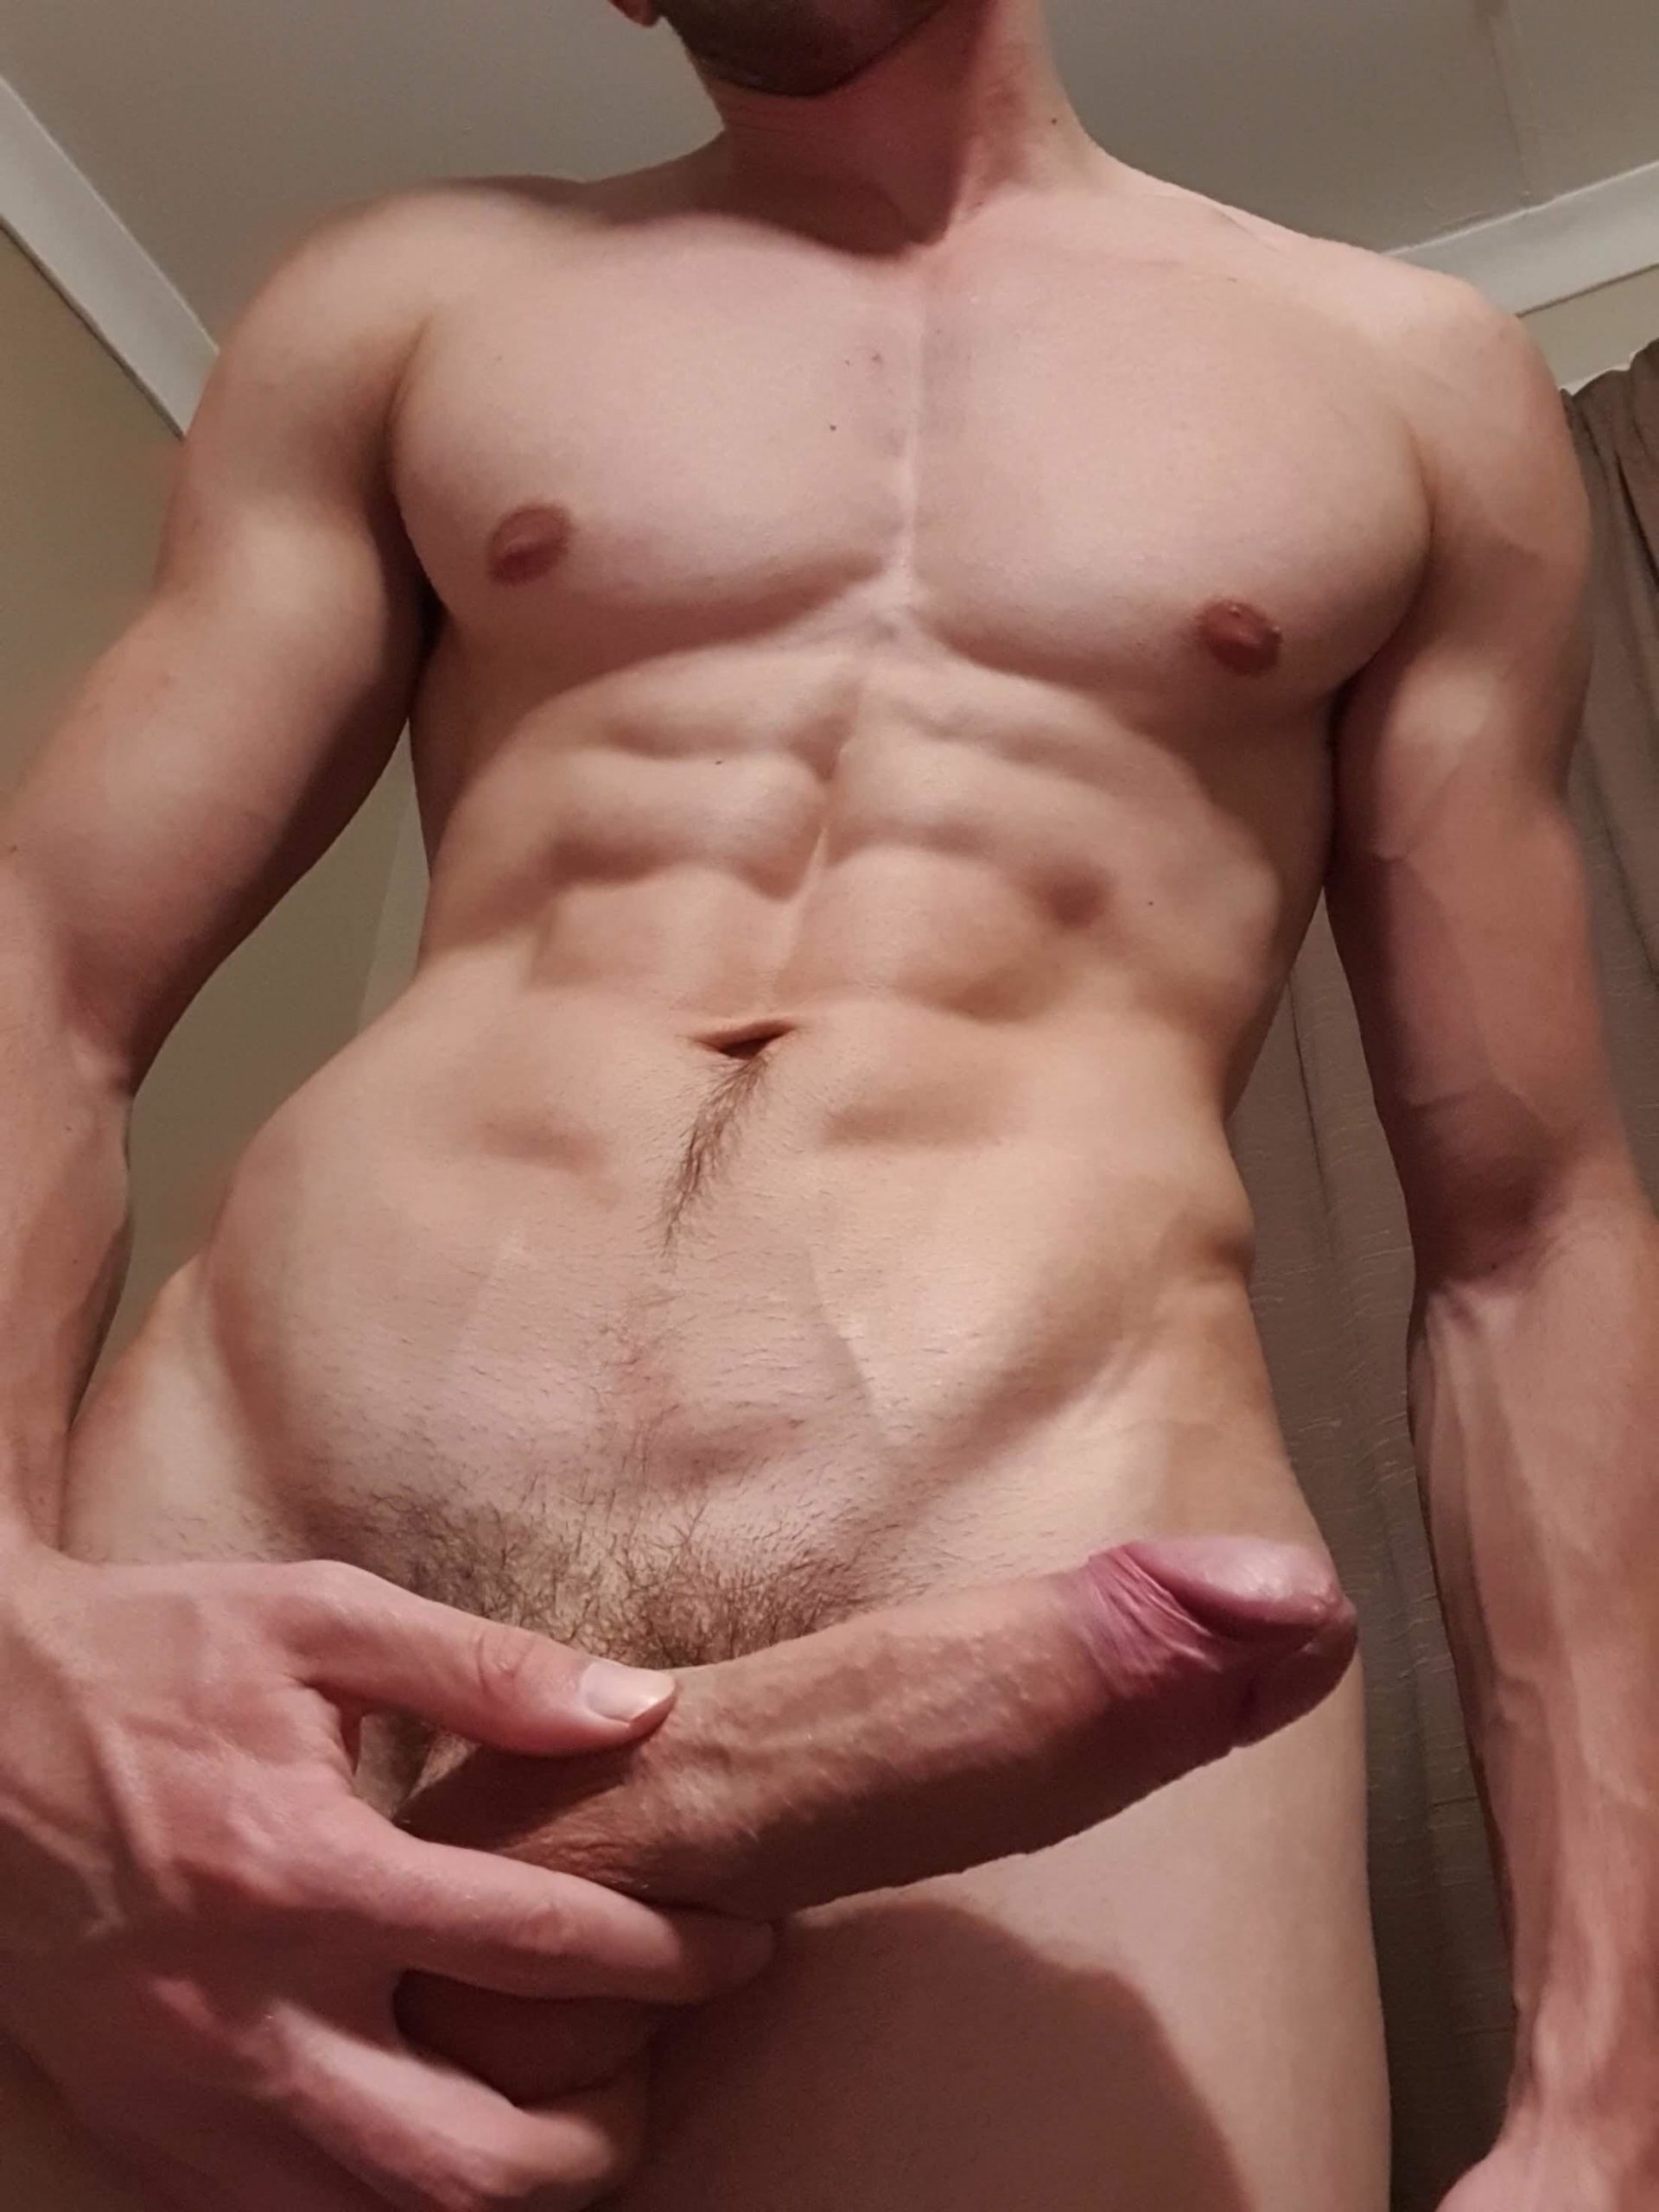 boy with a big uncut cock